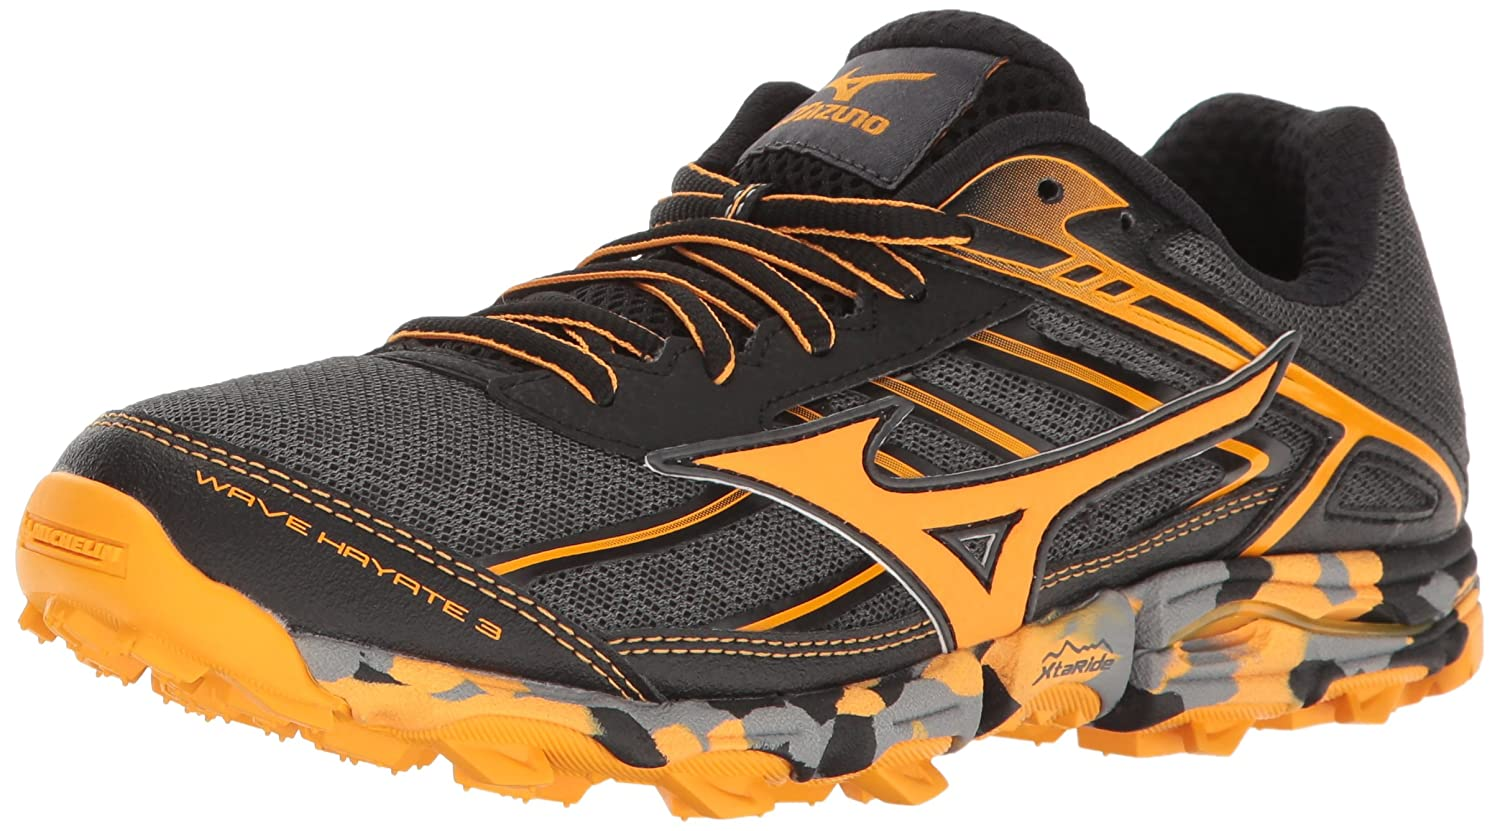 Mizuno Women's Wave Hayate 3 Trail Runner B01H3EGT0K 10 B(M) US|Dark Shadow/Tangerine Tango